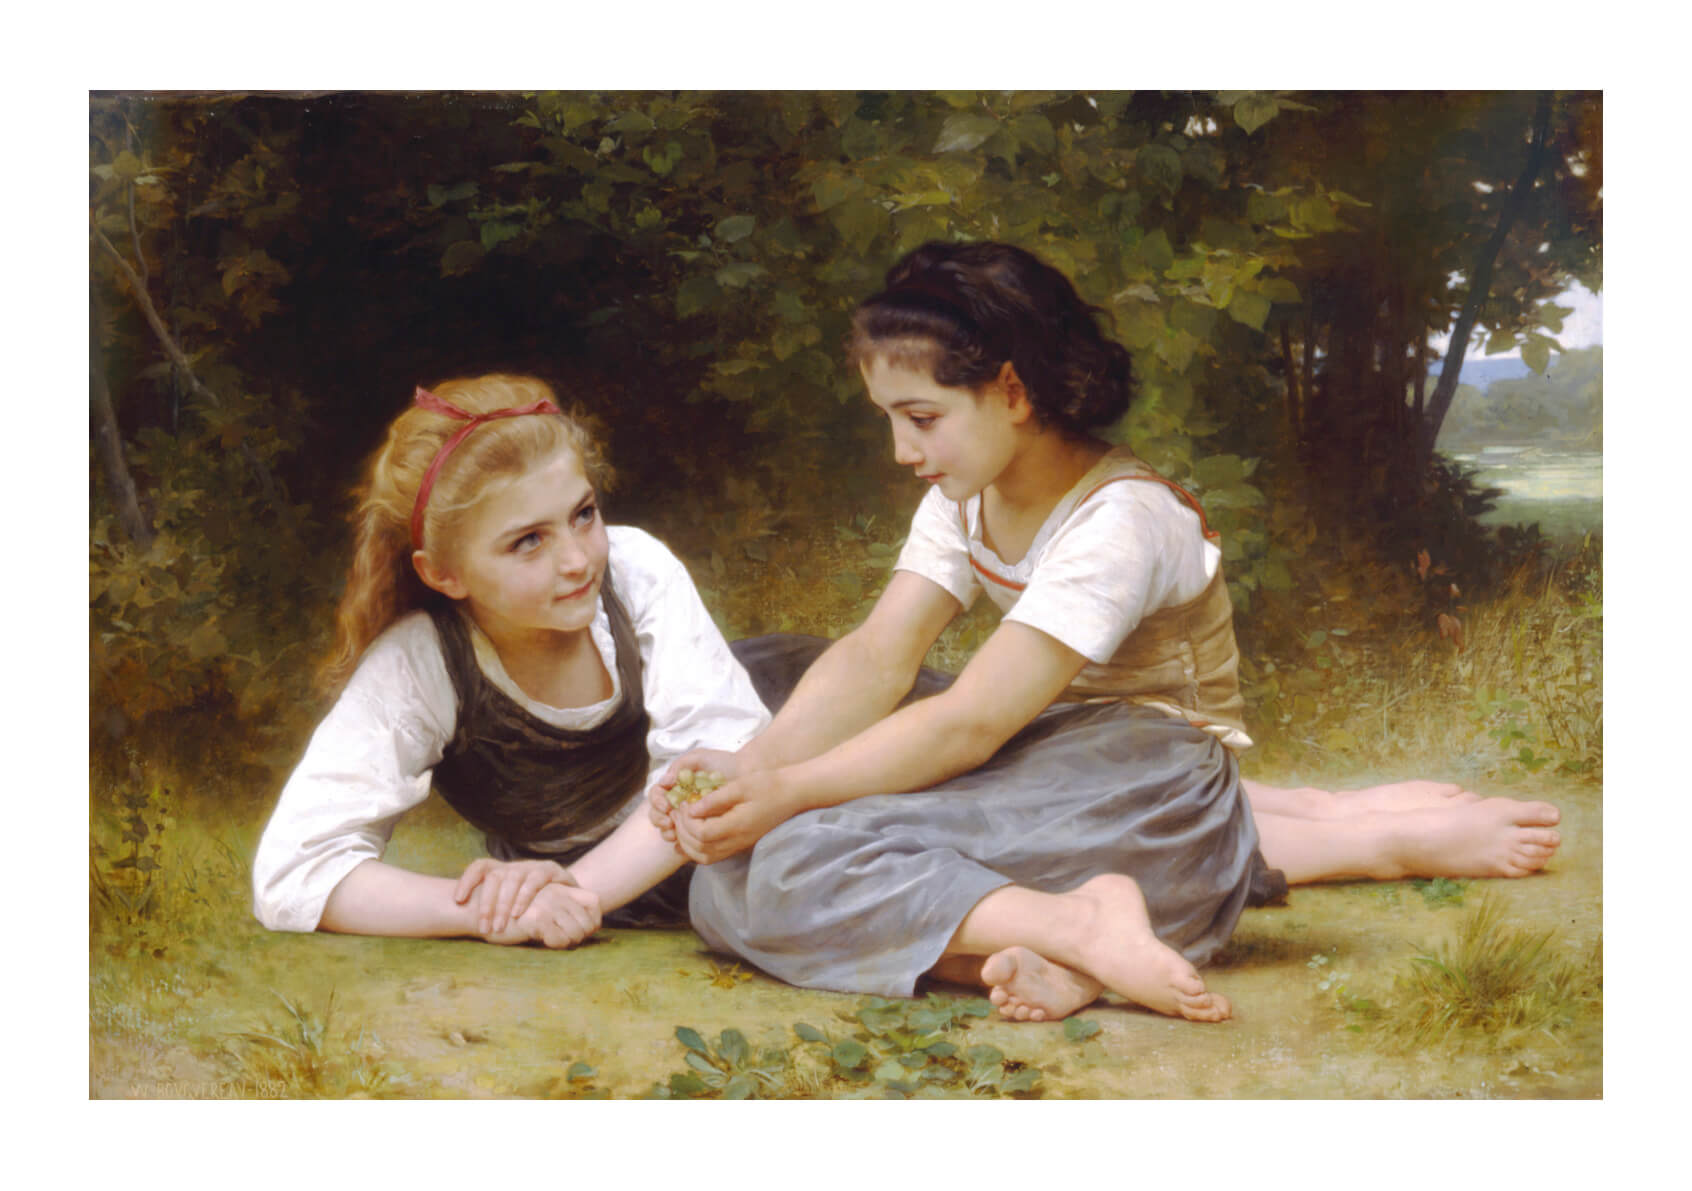 William Bouguereau - The Nut Gatherers (1882)